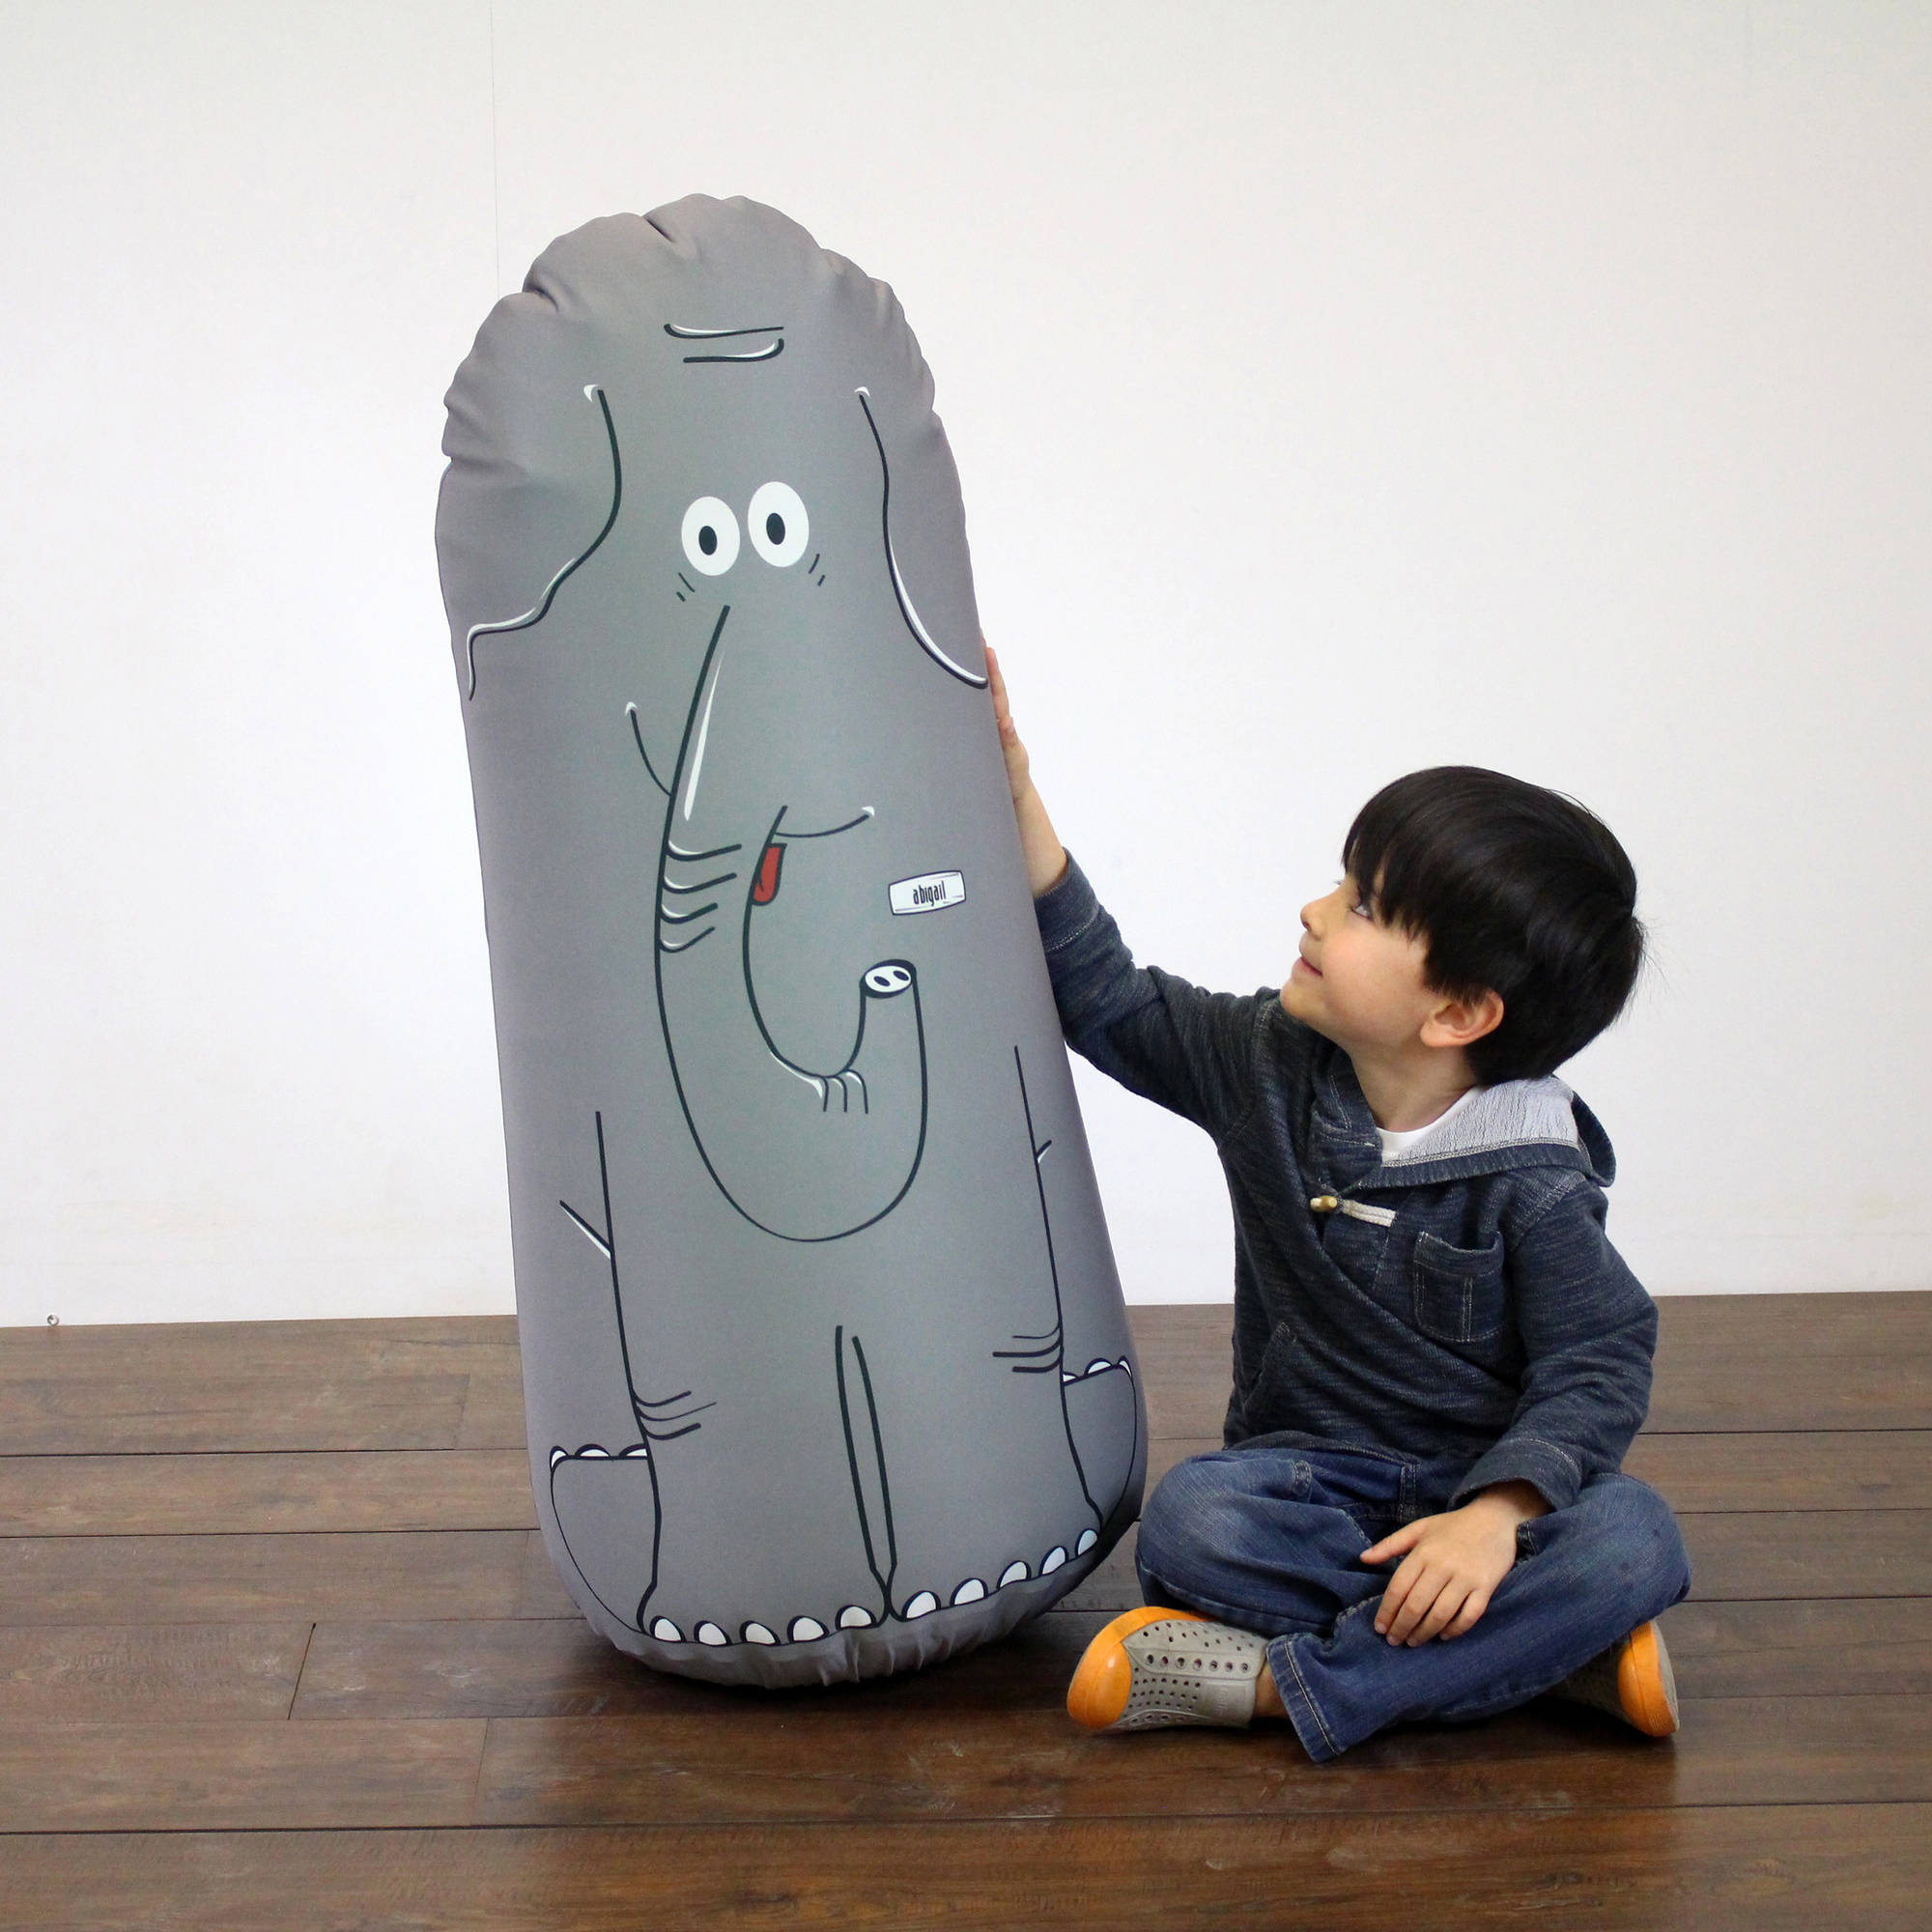 Pueri Elemental LLC Kid Tough Fitness Inflatable Free - Standing Punching Bag + Machine Washable Fabric Cover Abigail Elephant Kids Workout Buddy by Bonk Fit